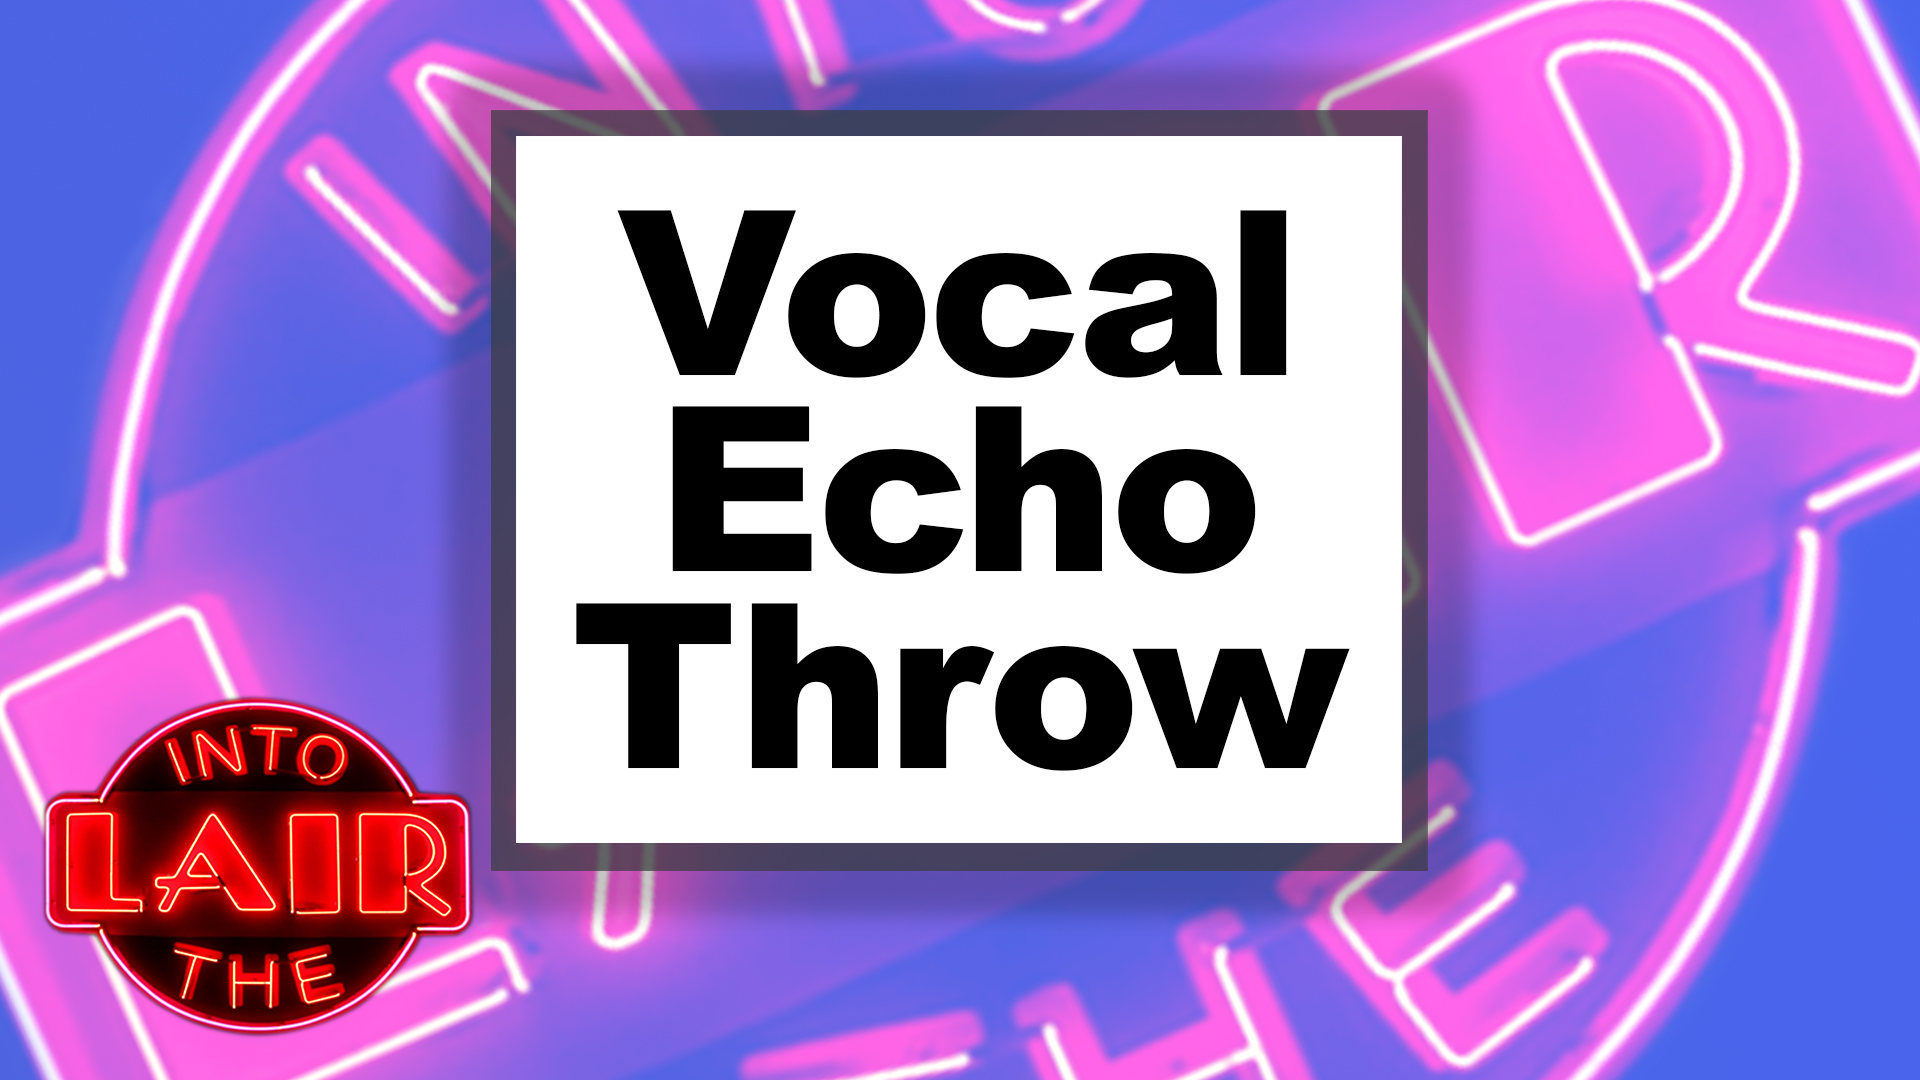 Vocal Echo Throw